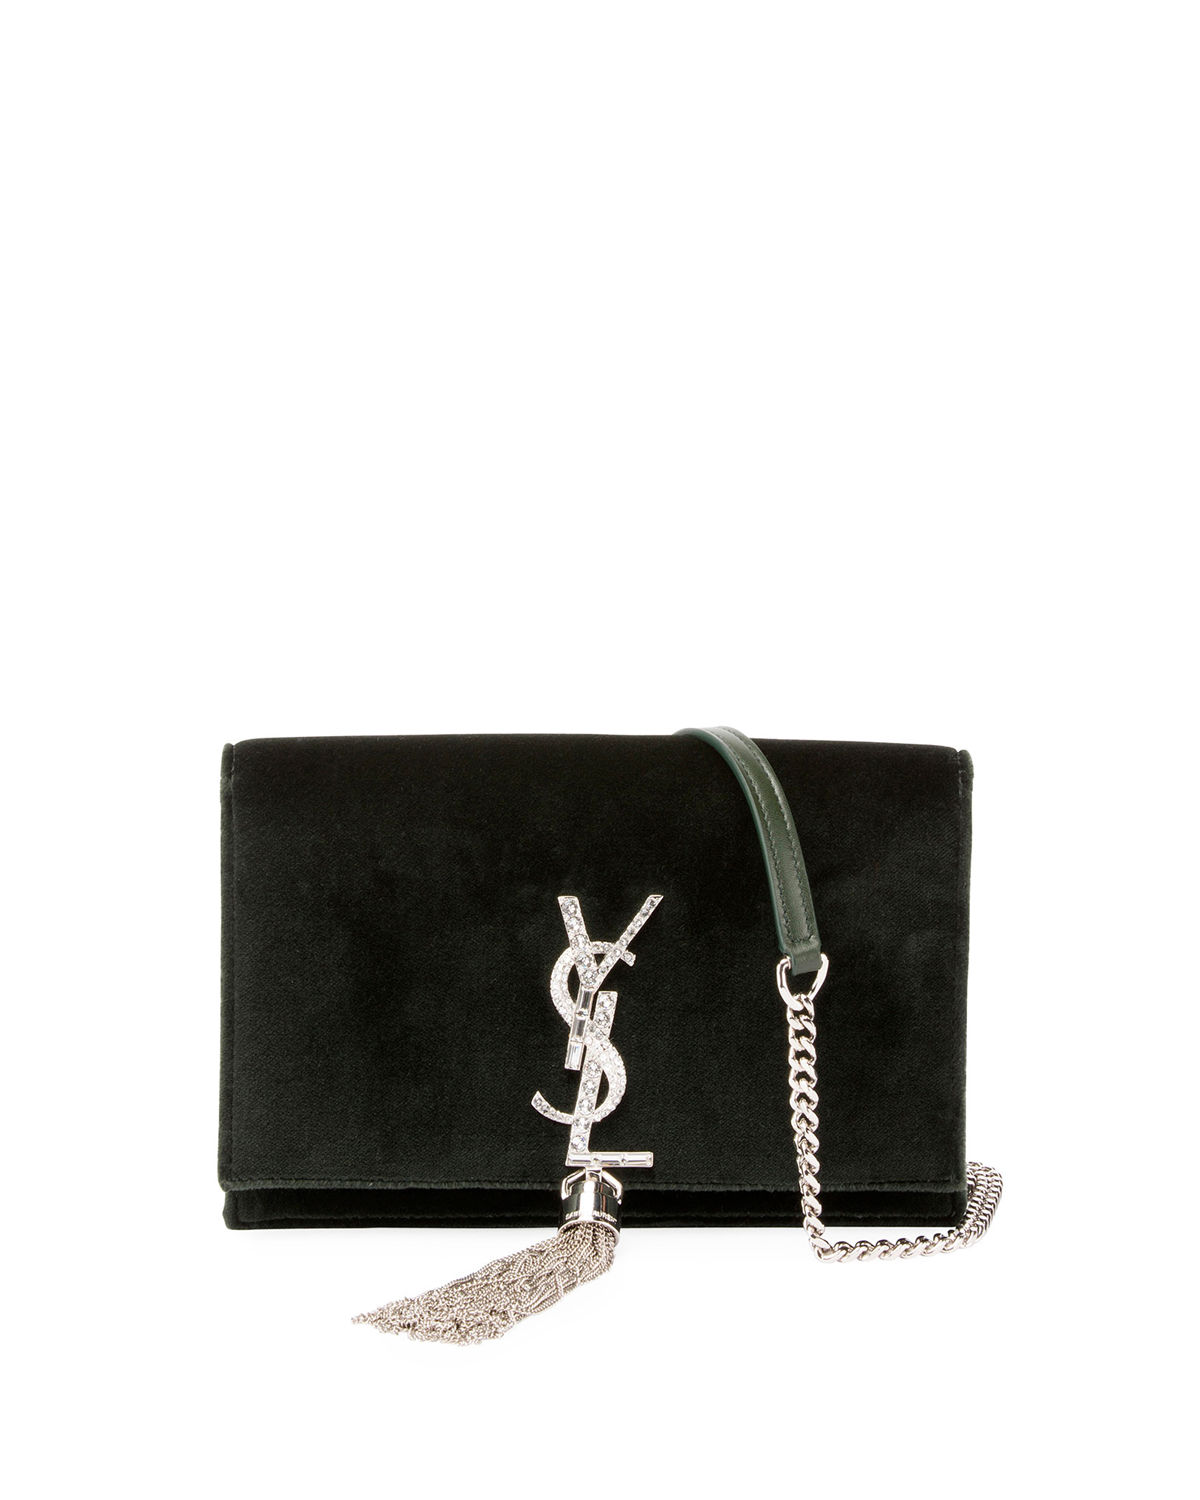 c21552d6f69 Saint Laurent Kate Velvet Crystal-Monogram YSL Tassel Wallet on Chain